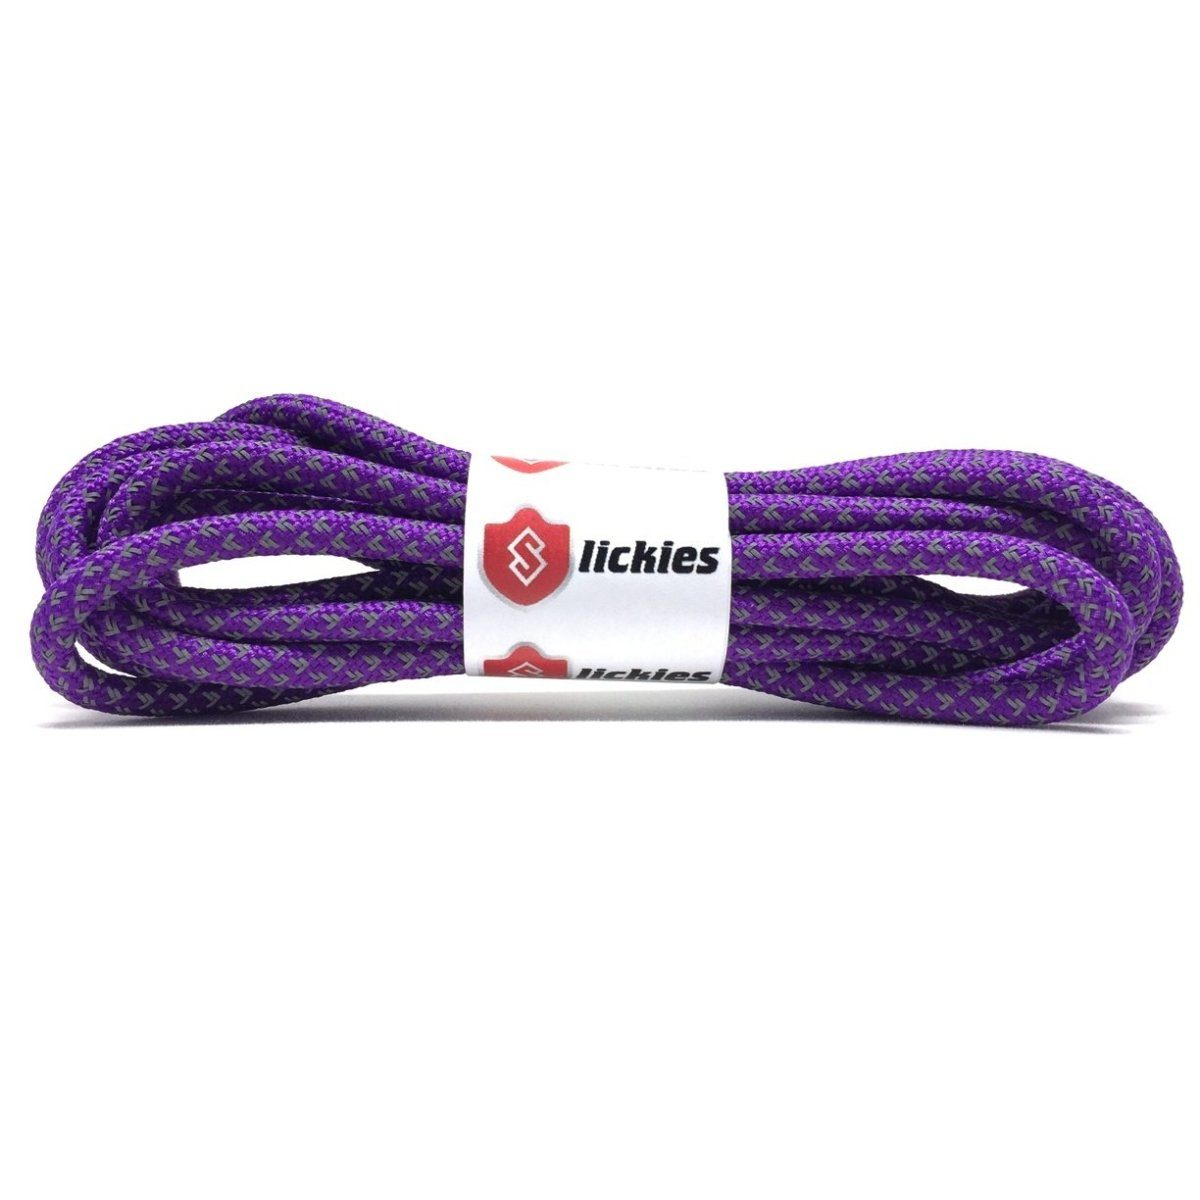 3M Rope - 3M Reflective Rope Laces - Purple